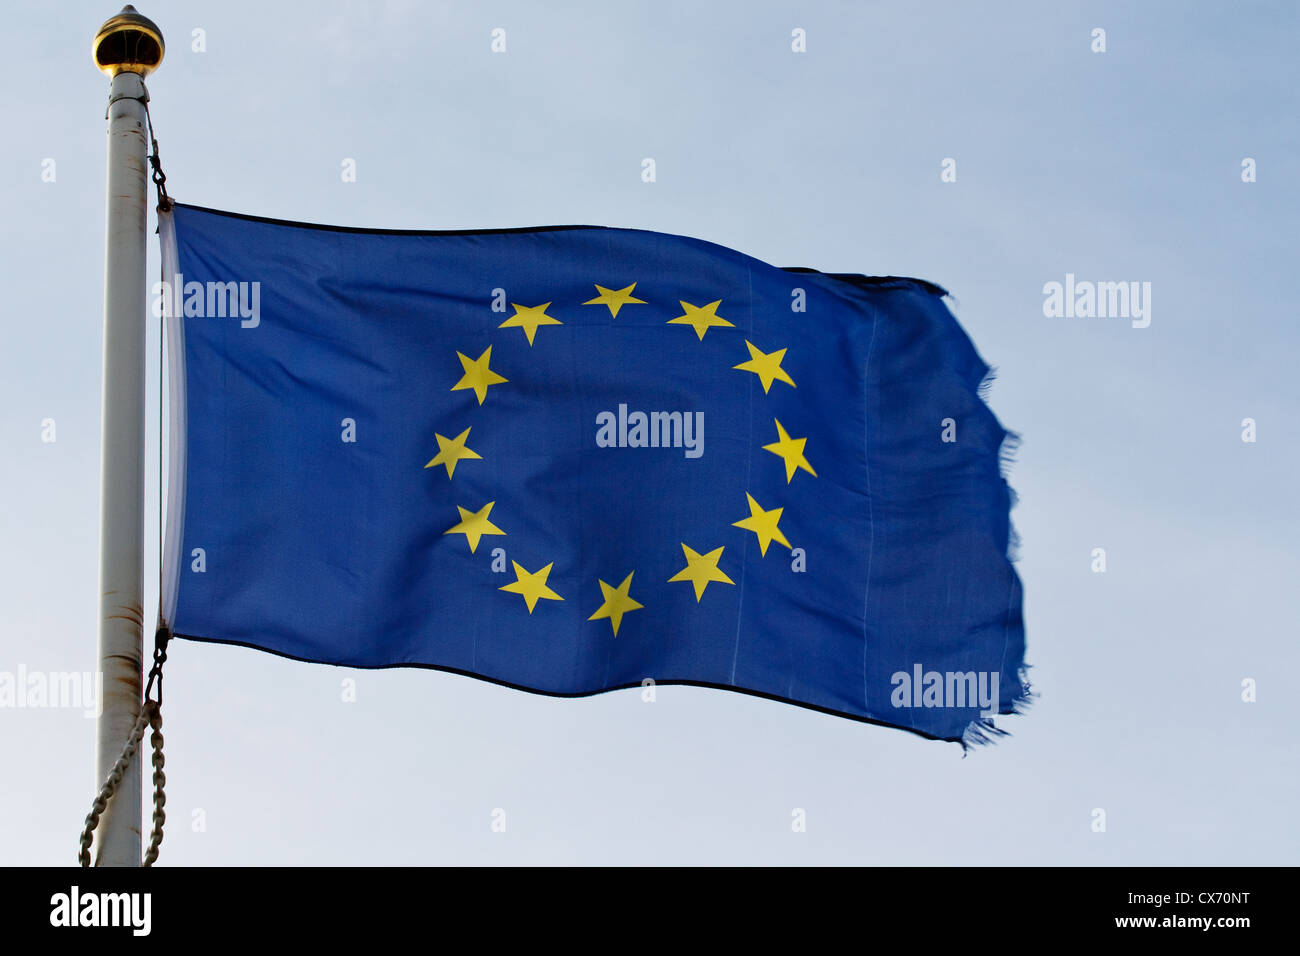 The European union flag of europe ripples in the wind on flagpole - Stock Image